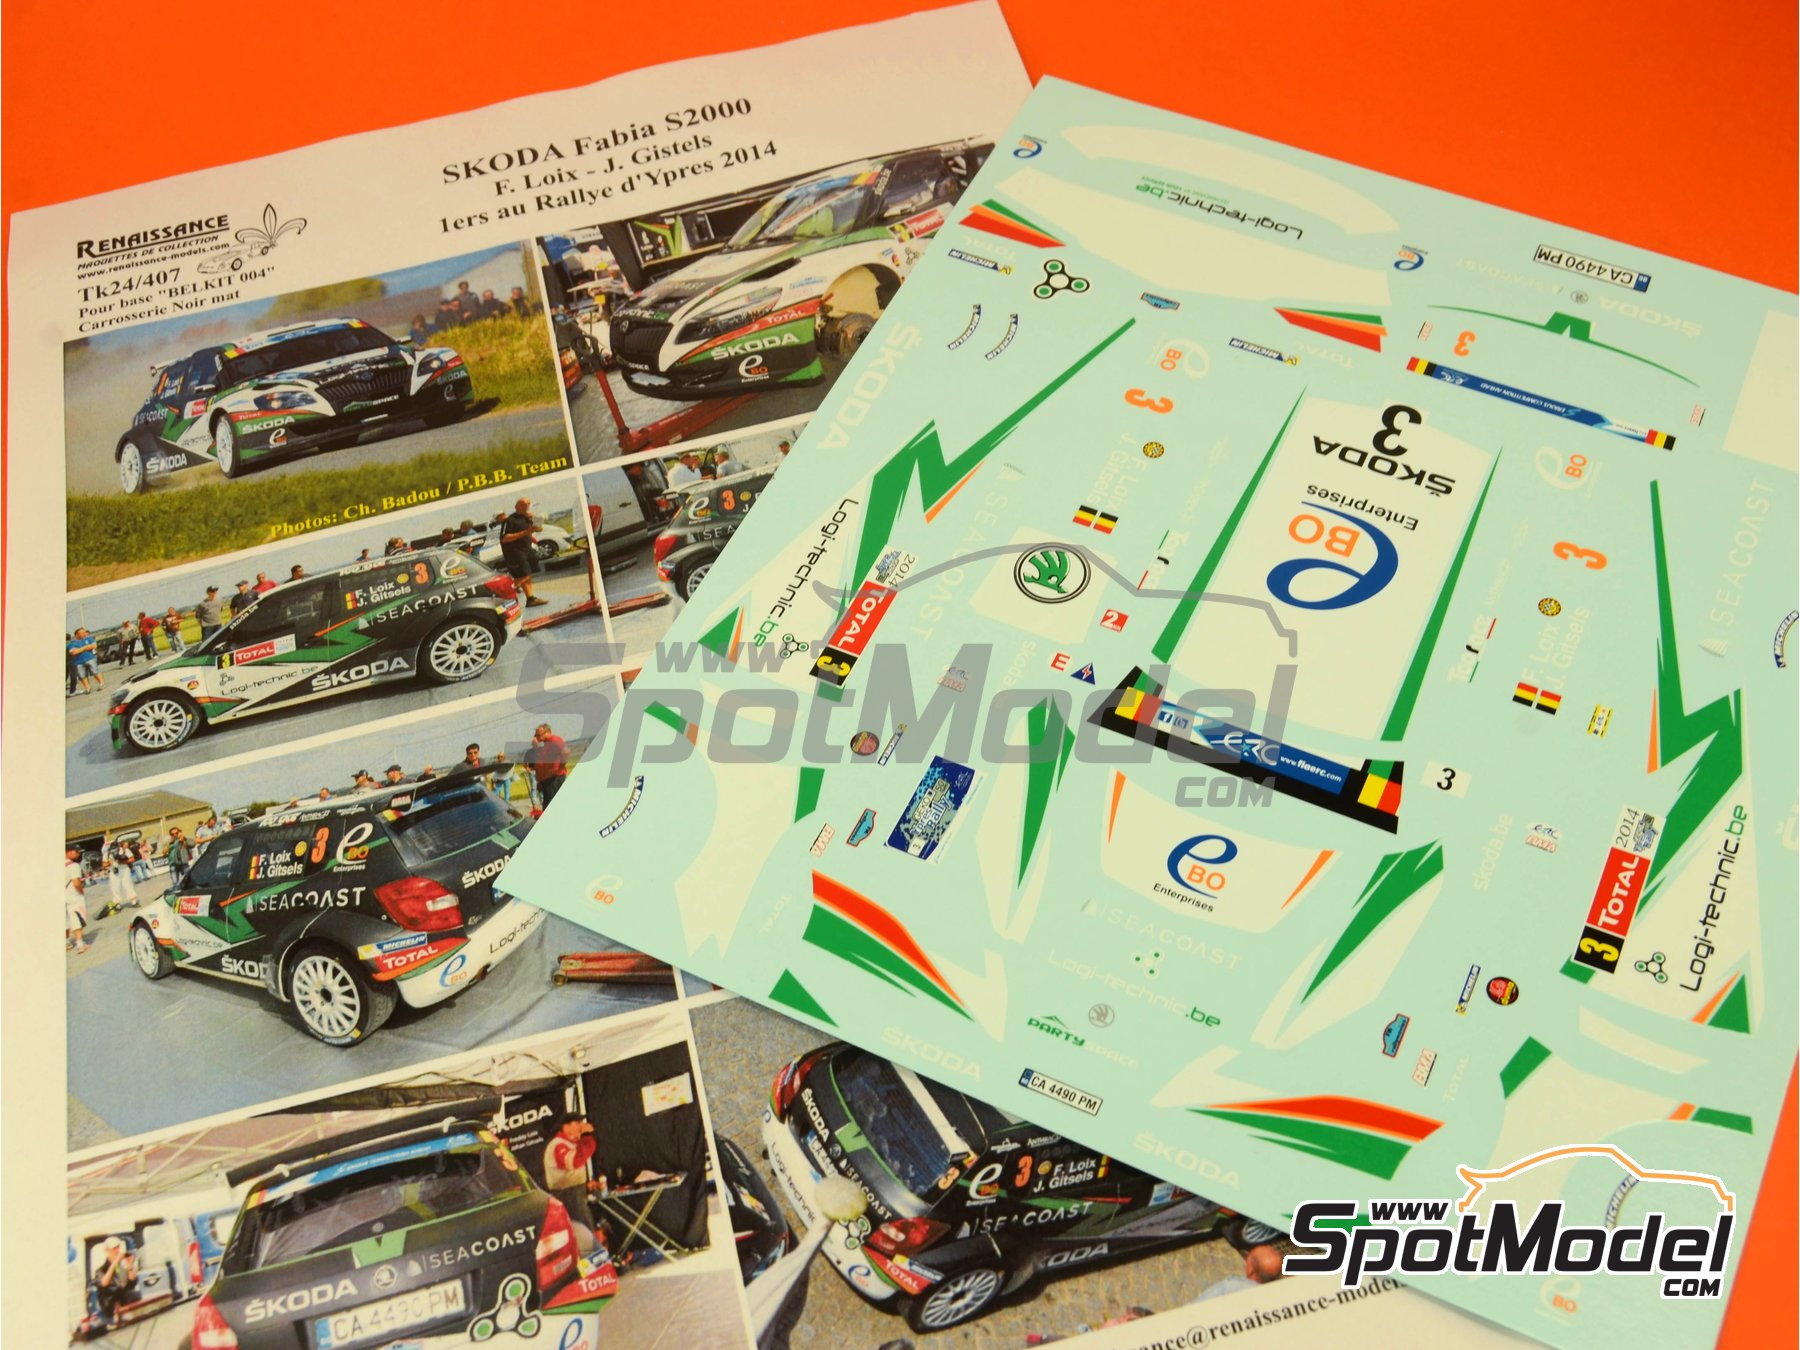 Image 8: Skoda Fabia S2000 Seacoast - Ypres Rally 2014   Marking / livery in 1/24 scale manufactured by Renaissance Models (ref.TK24-407)